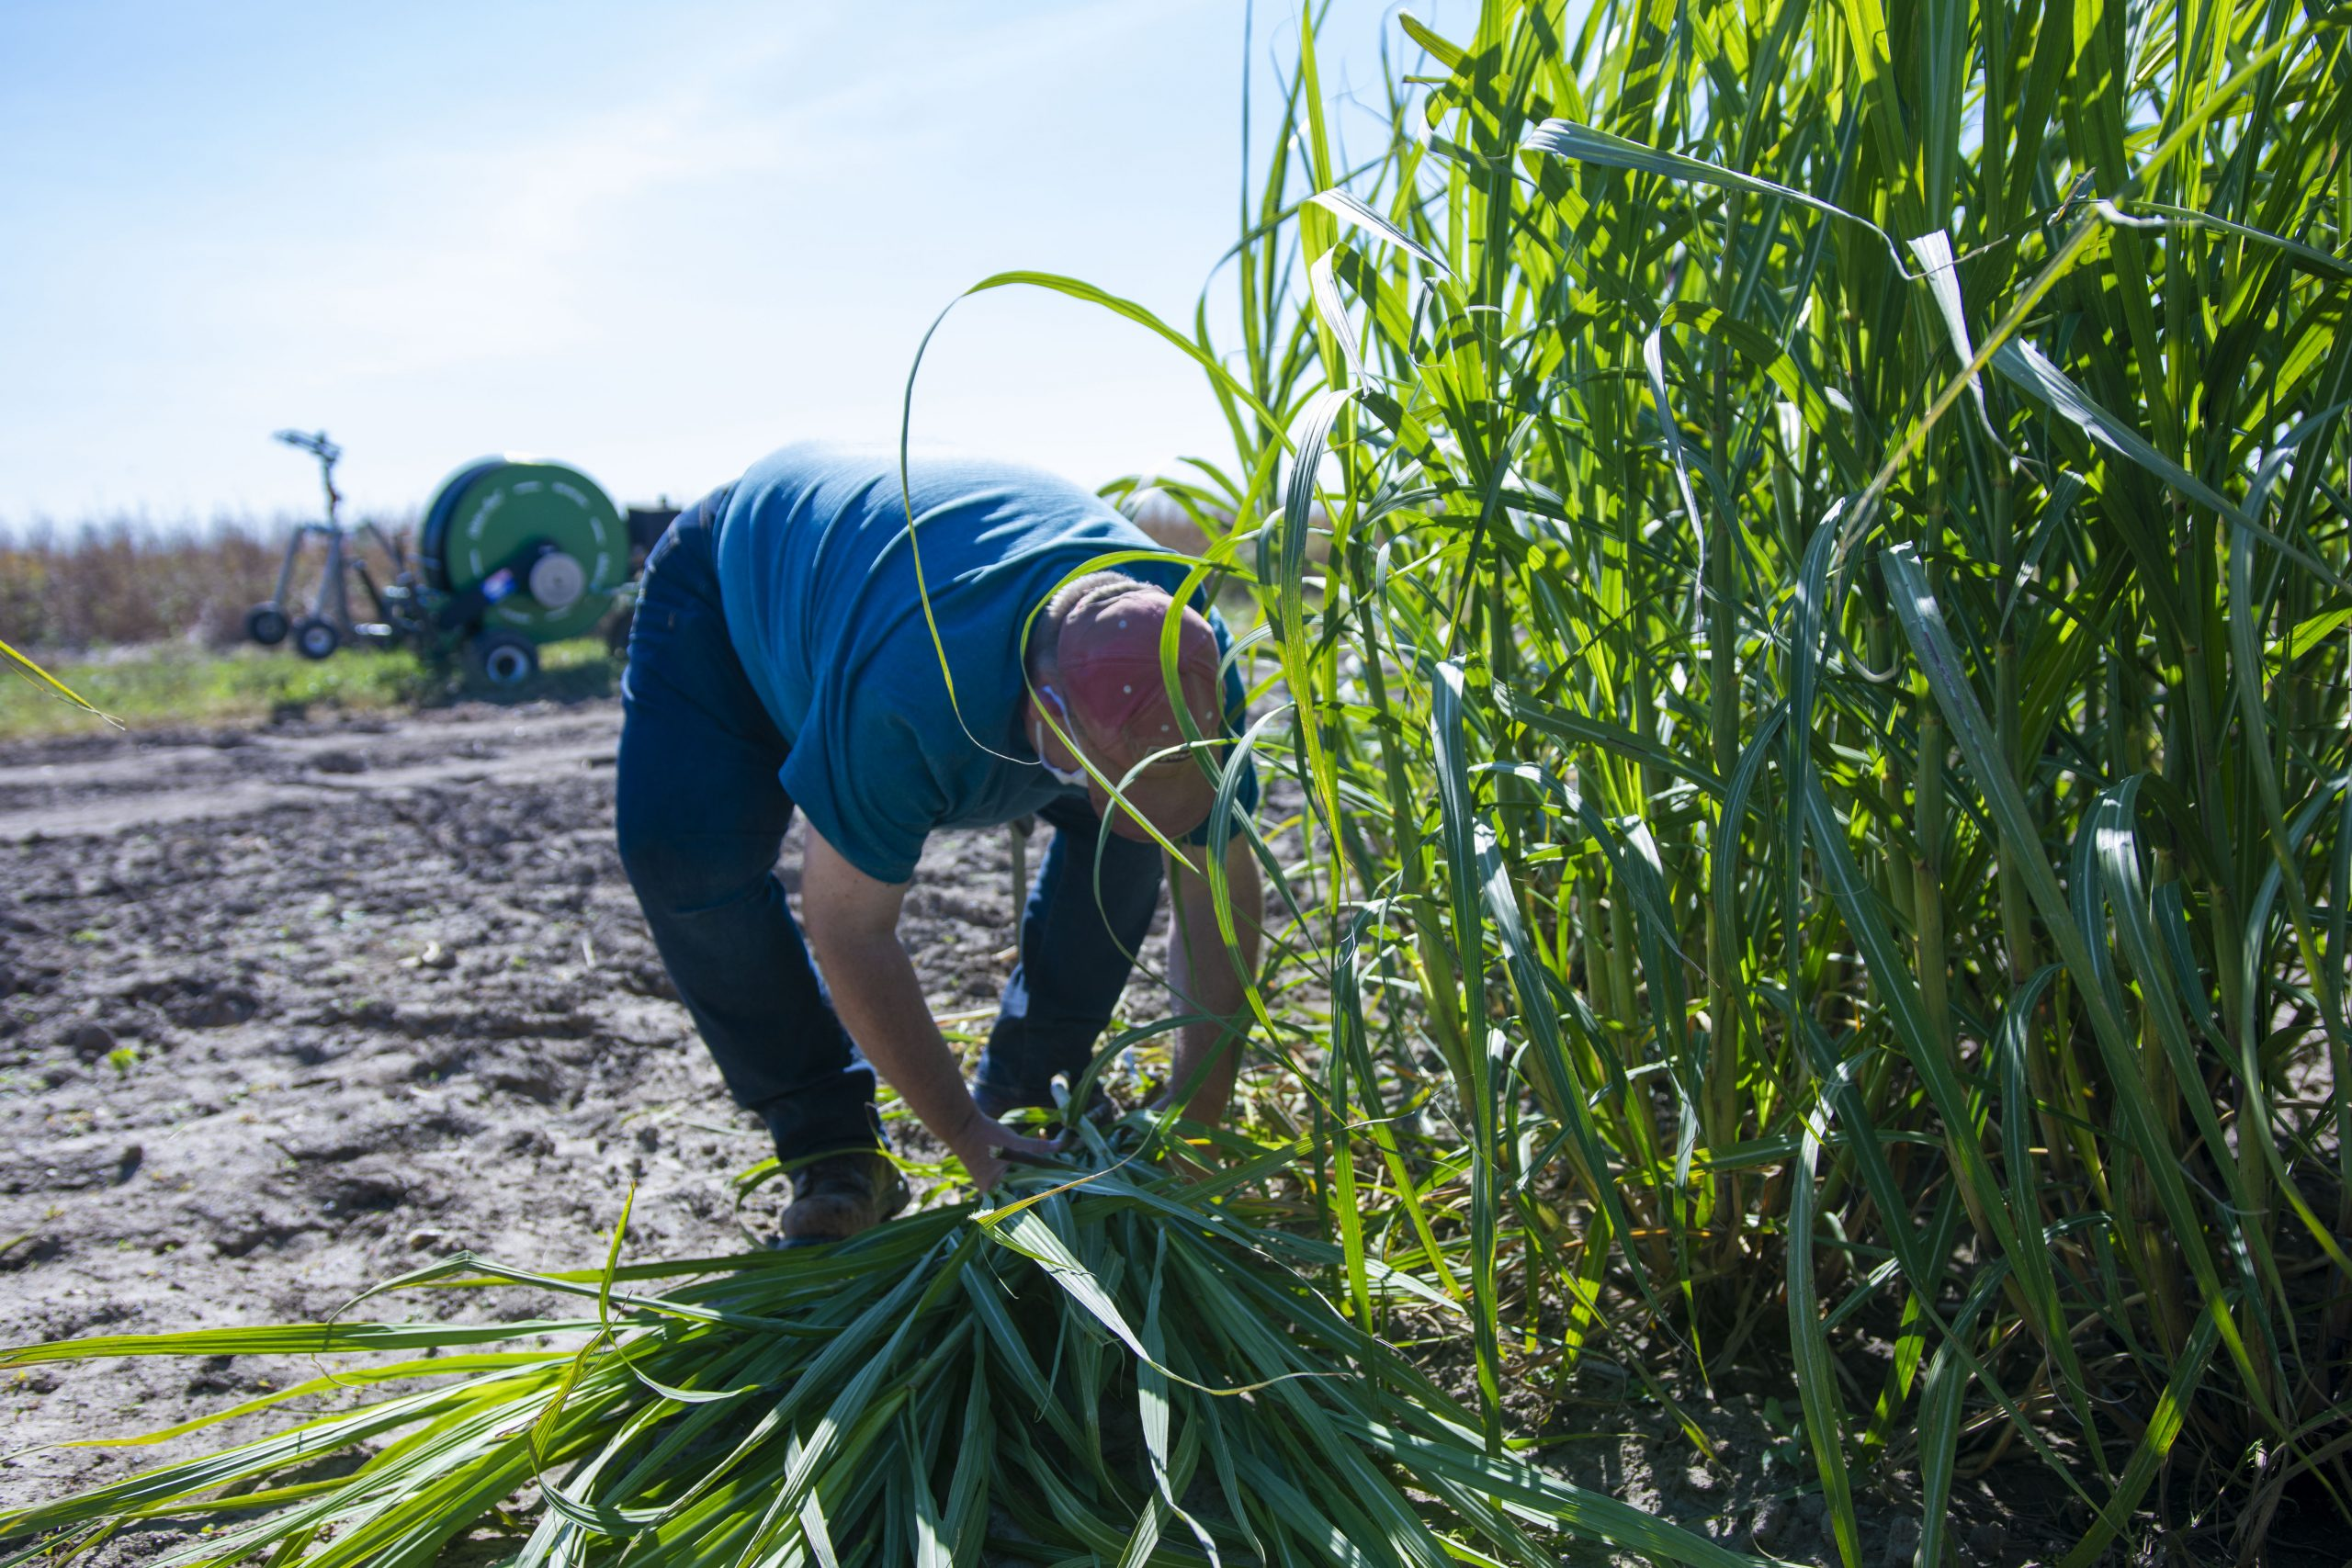 CABBI Feedstock Production researcher Scott McCoy harvests oilcane at the Illinois Energy Farm.